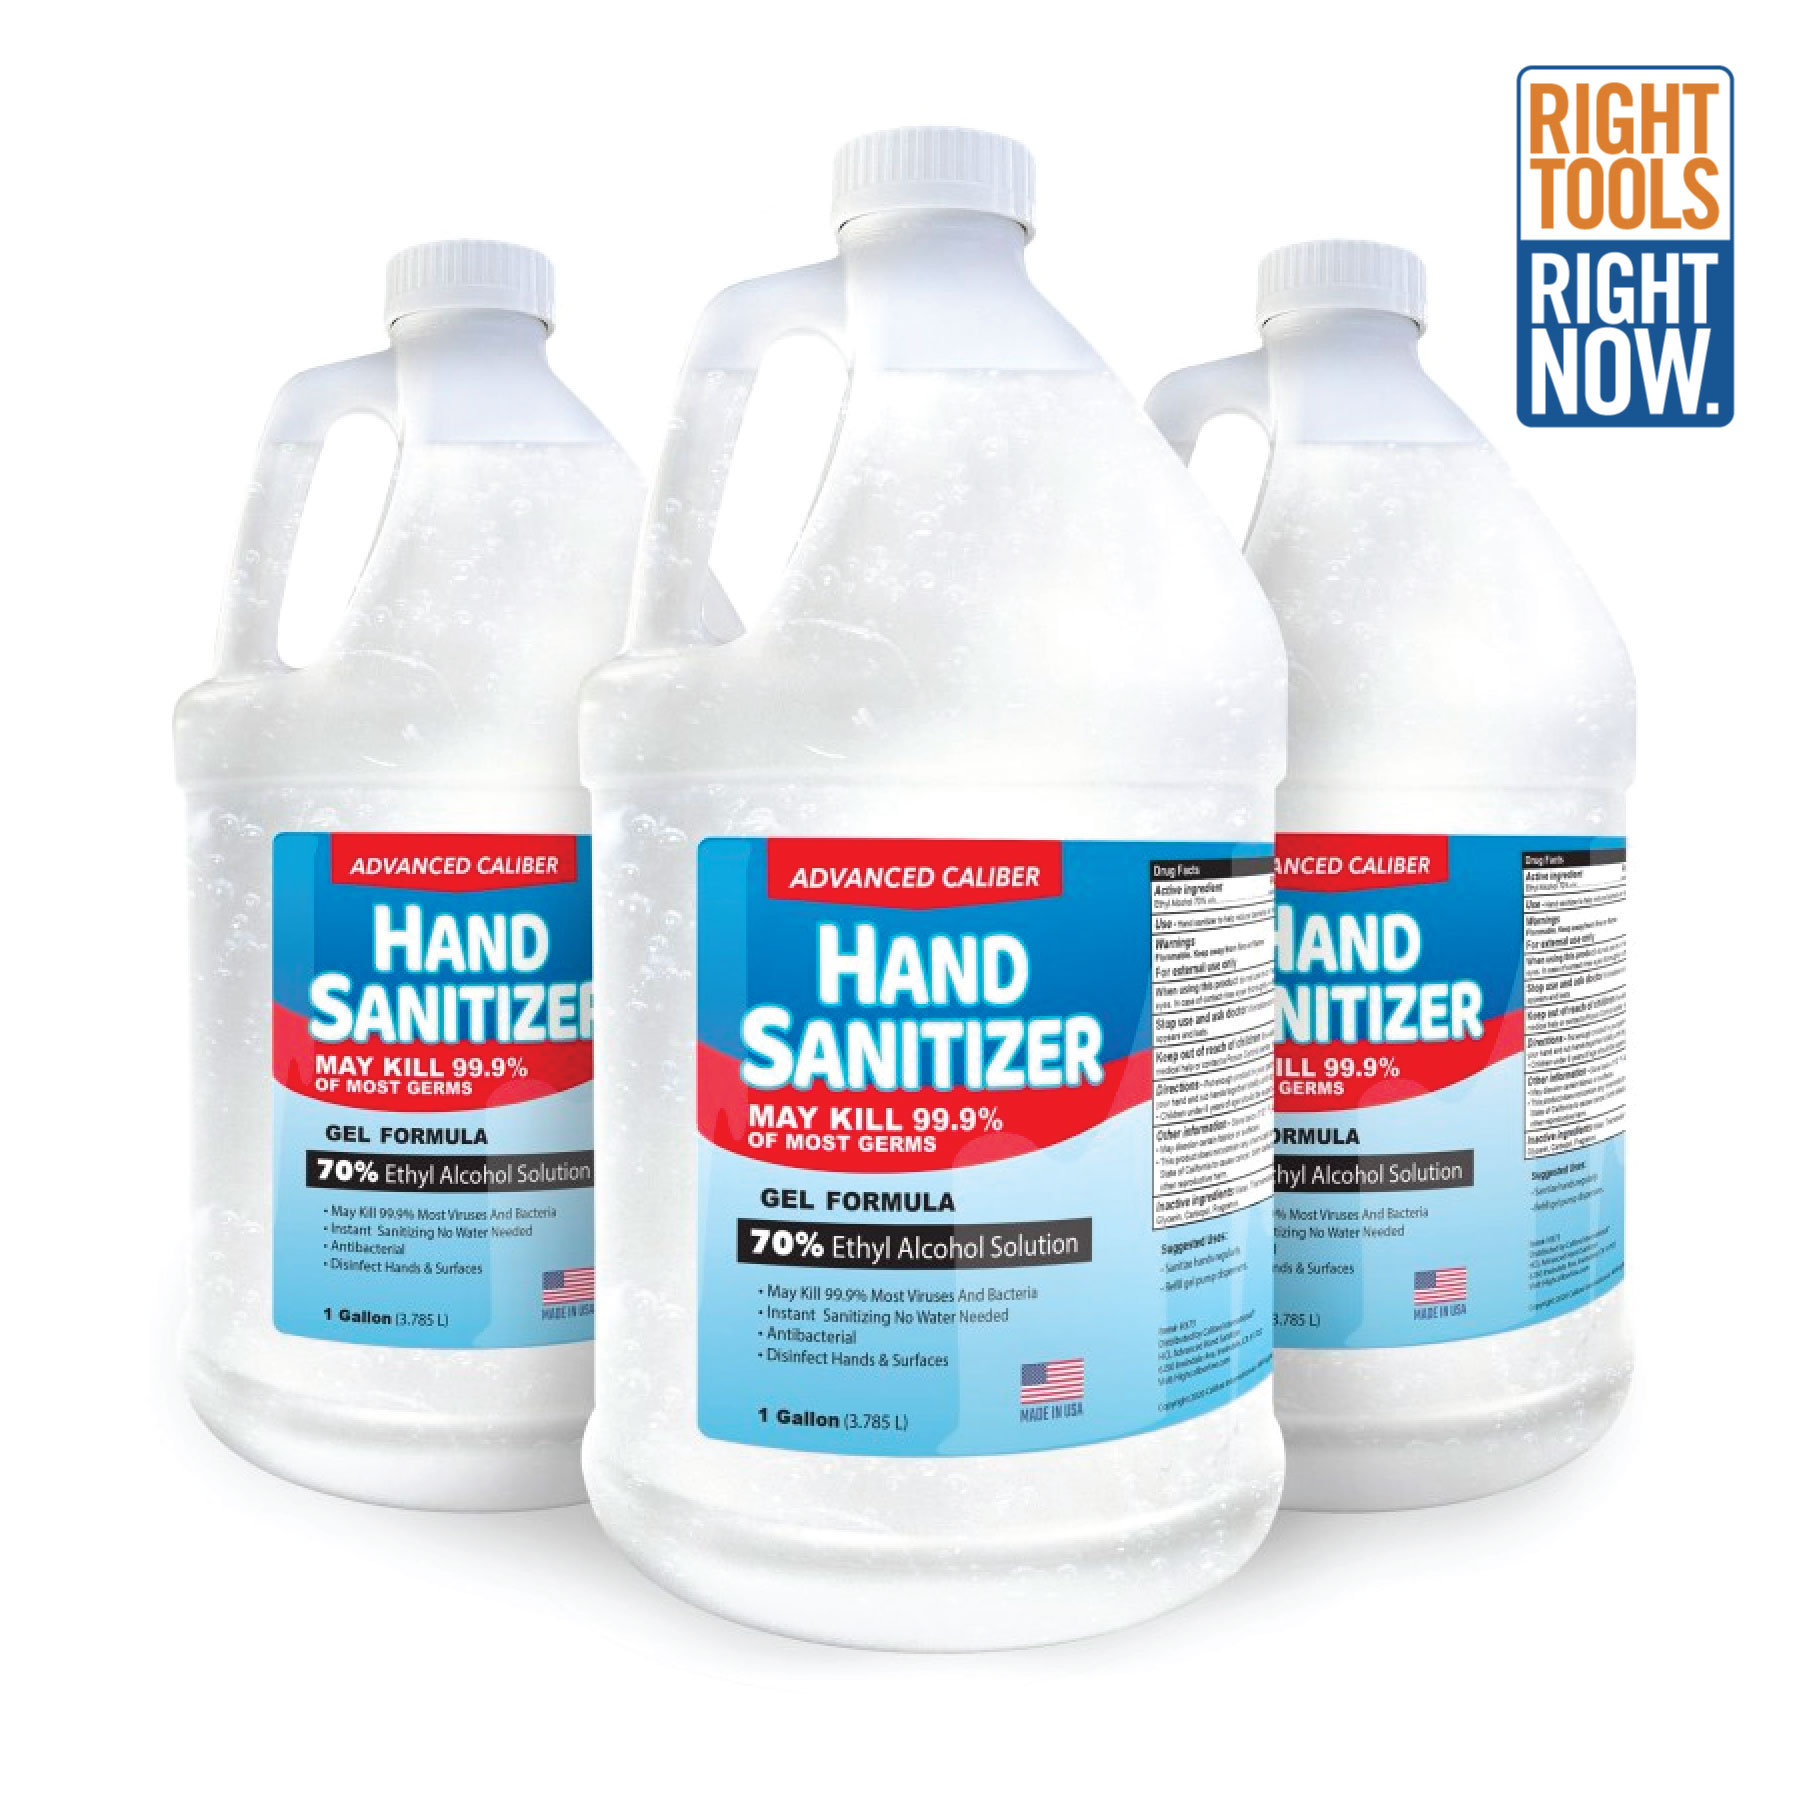 Made to Order: Unscented Gallon of Hand Sanitizer COVID,COVID-19,SARS,Virus,Viruses,Coughs,Safety,Sanis,Wipes,Cleaners,Antibacterials,Screens,Shields,Sneeze,Clear